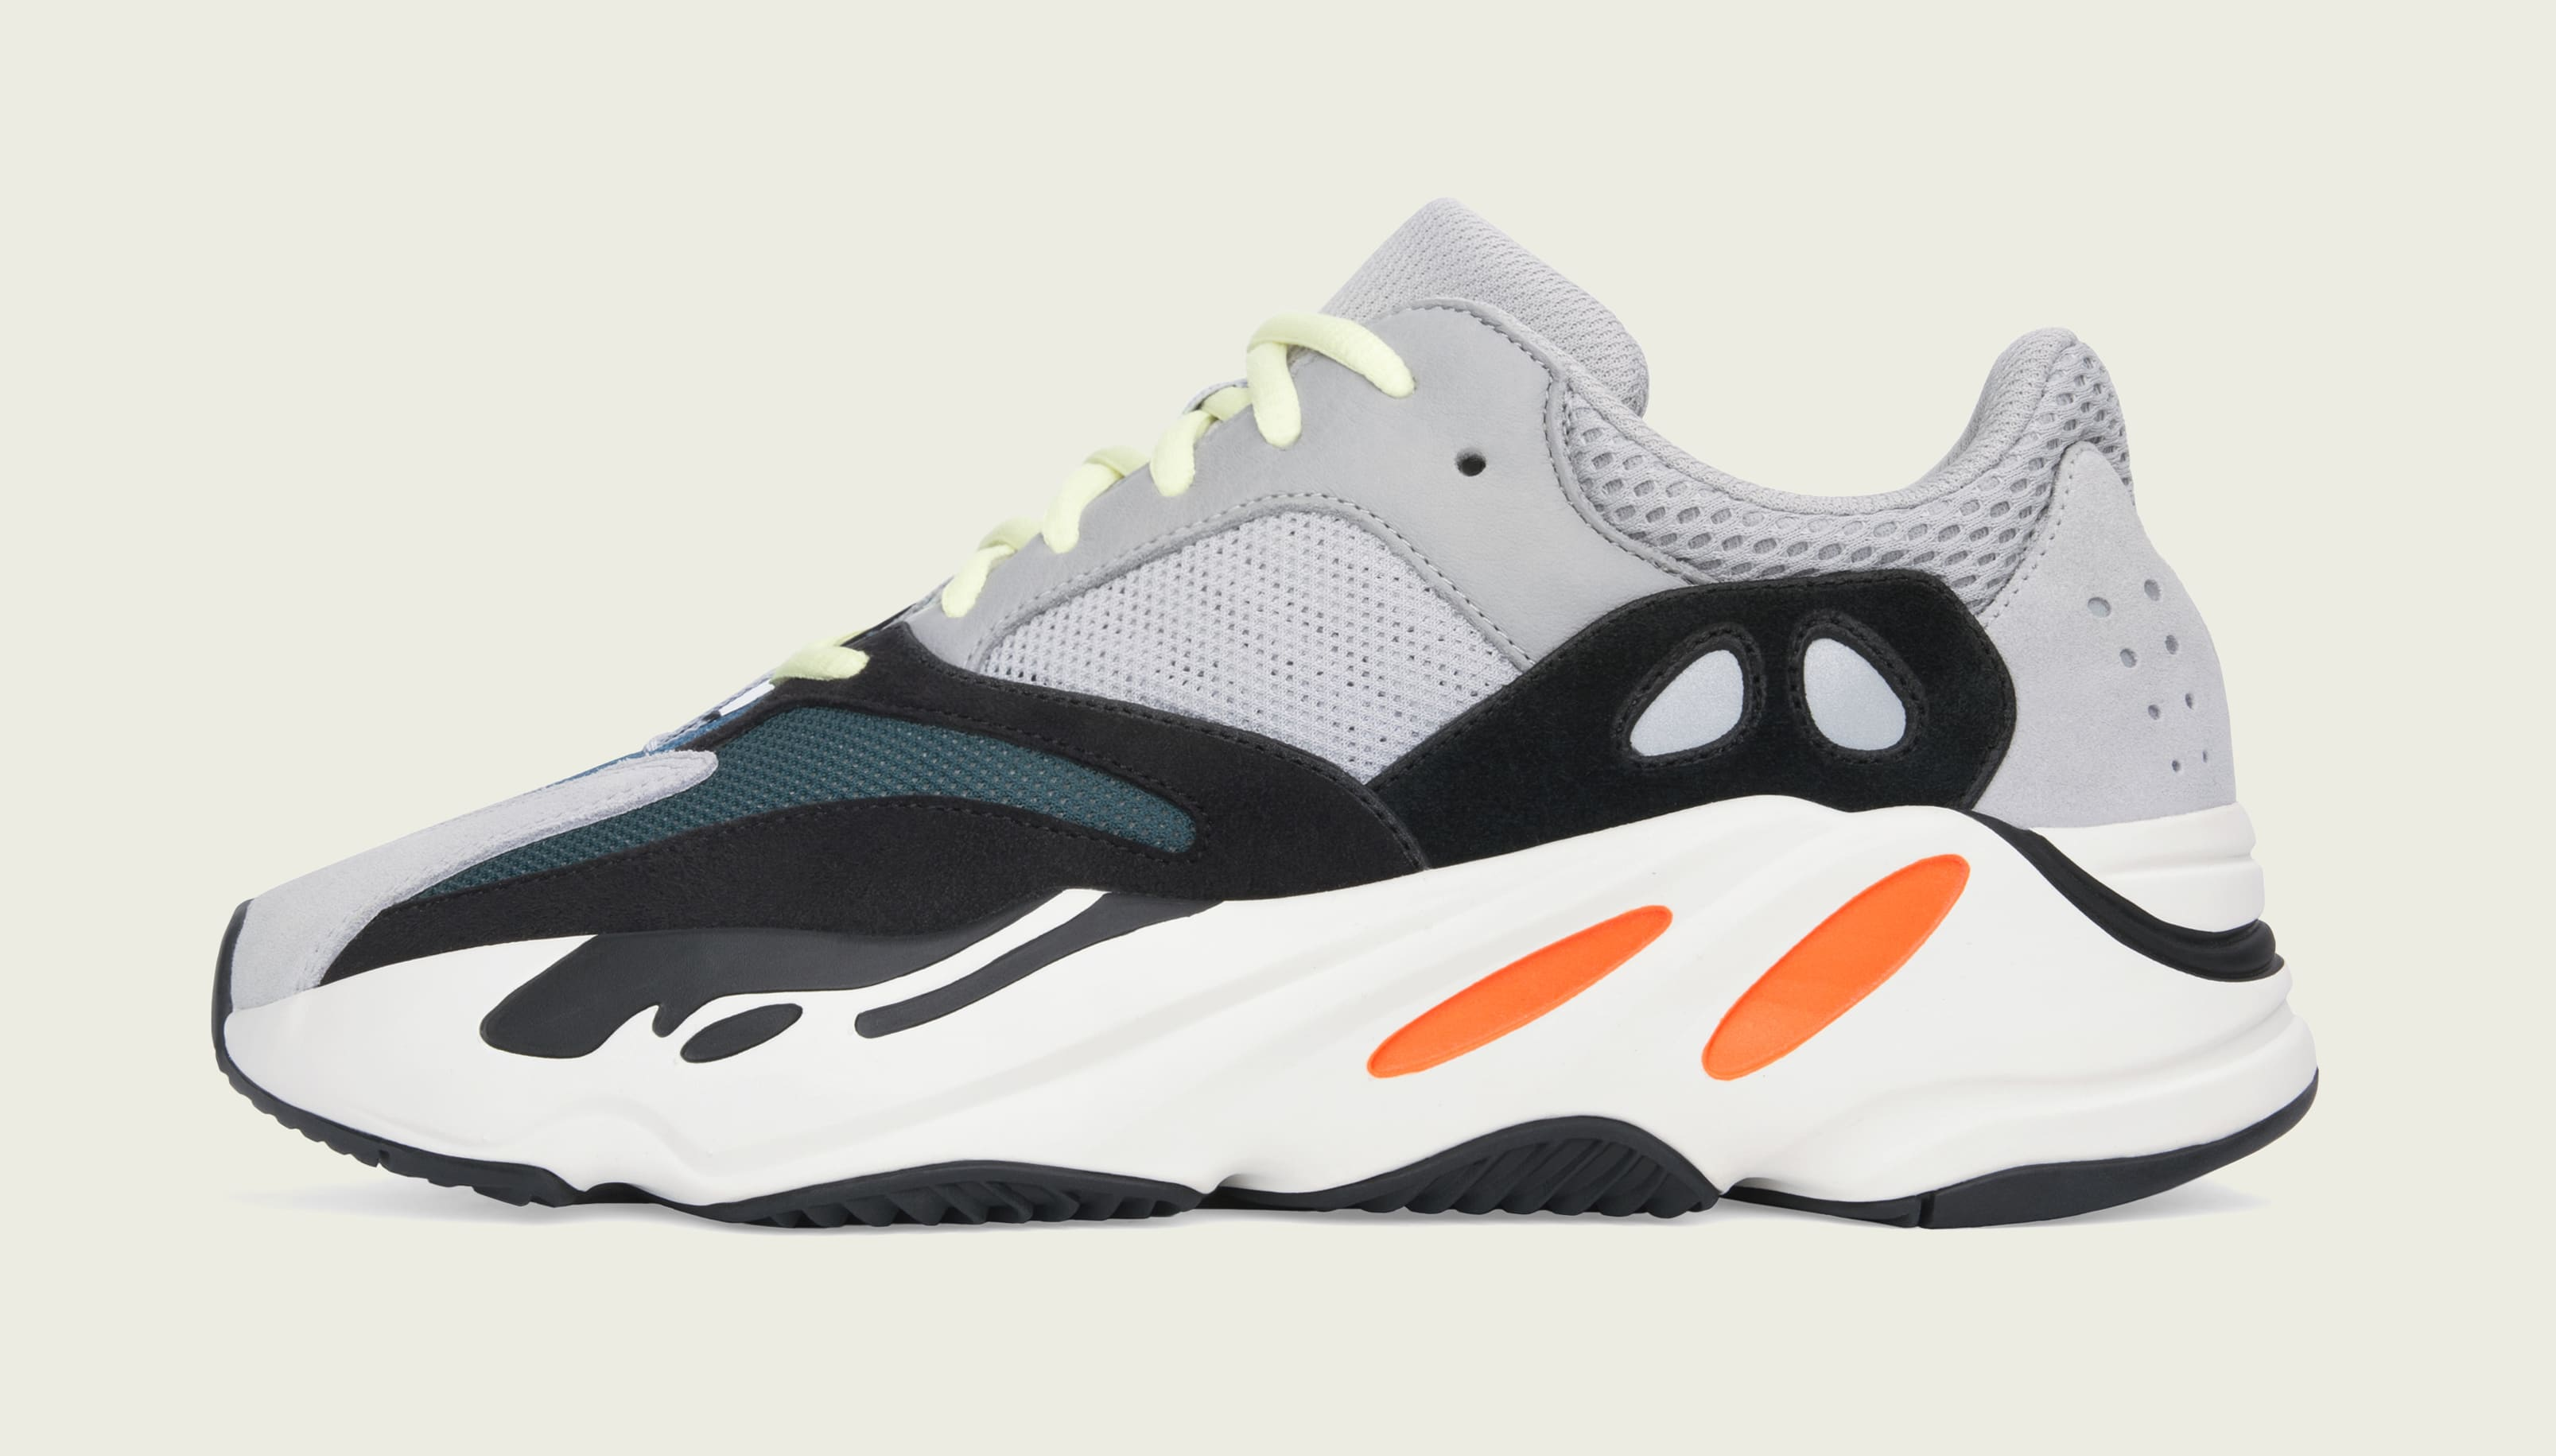 Yeezy Boost Supply >> Adidas Yeezy Boost 700 'Wave Runner' B75571 Release Date | Sole Collector